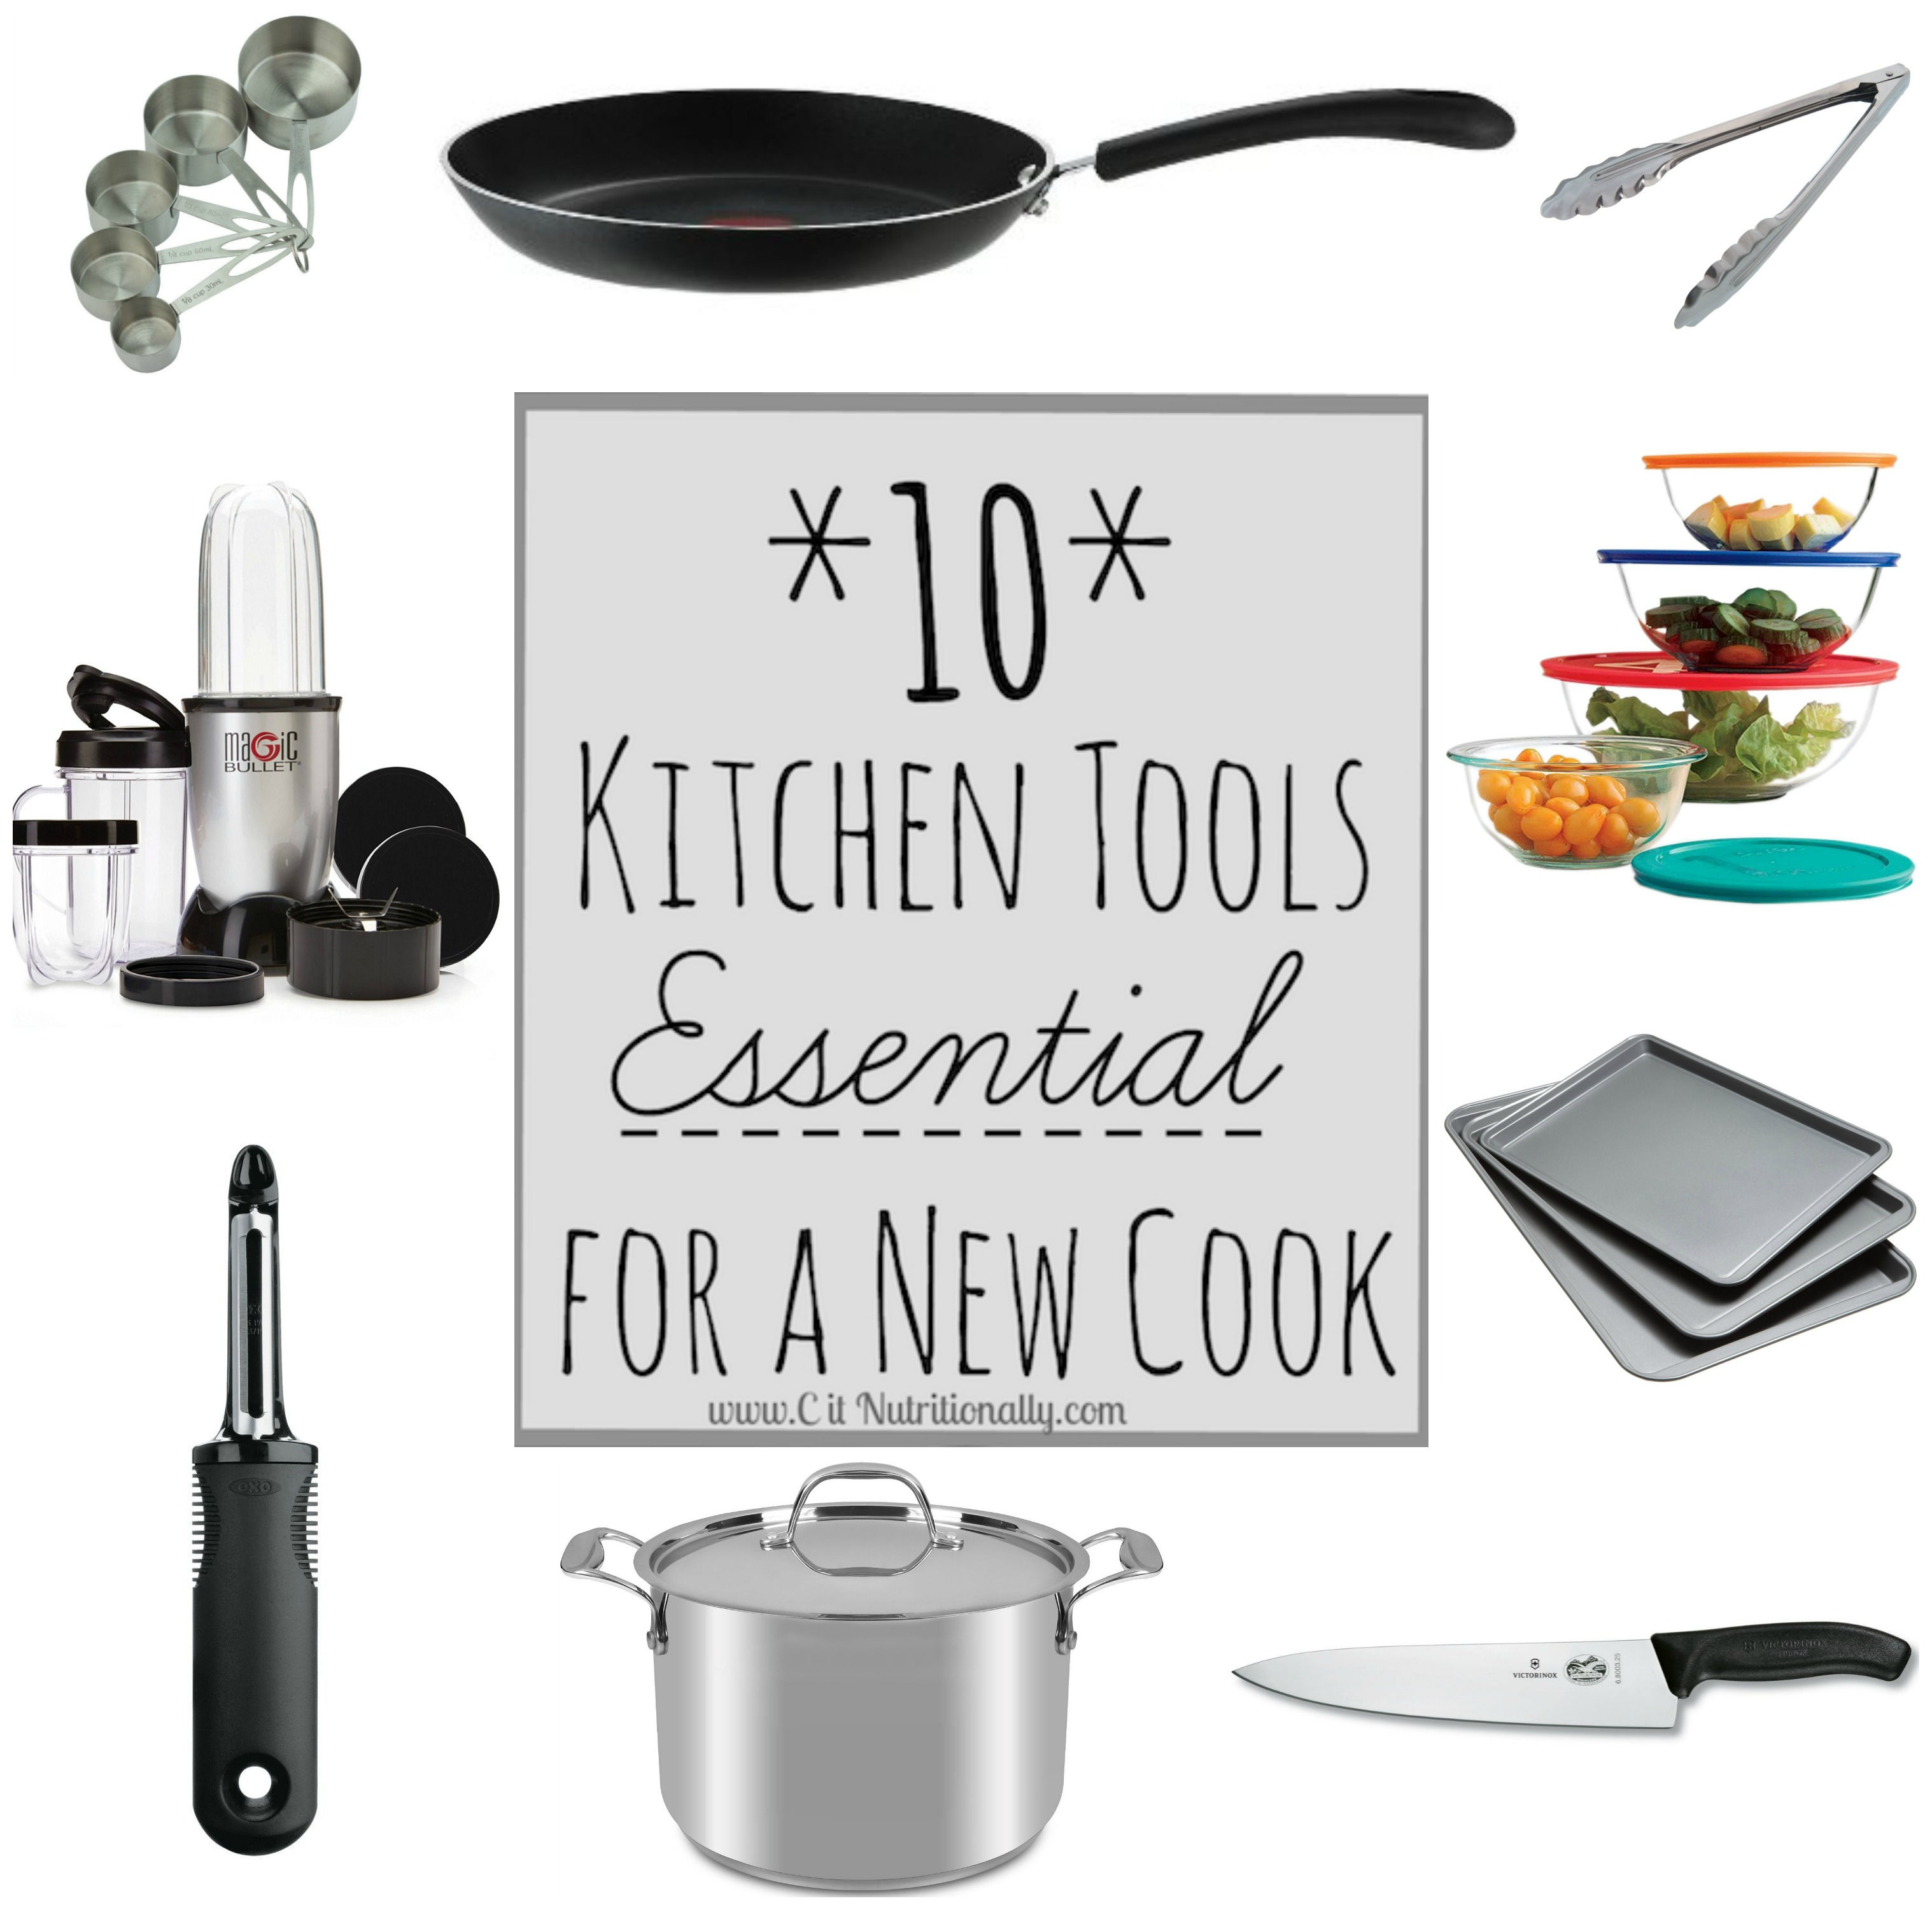 10 kitchen tools essential for a new cook c it nutritionally